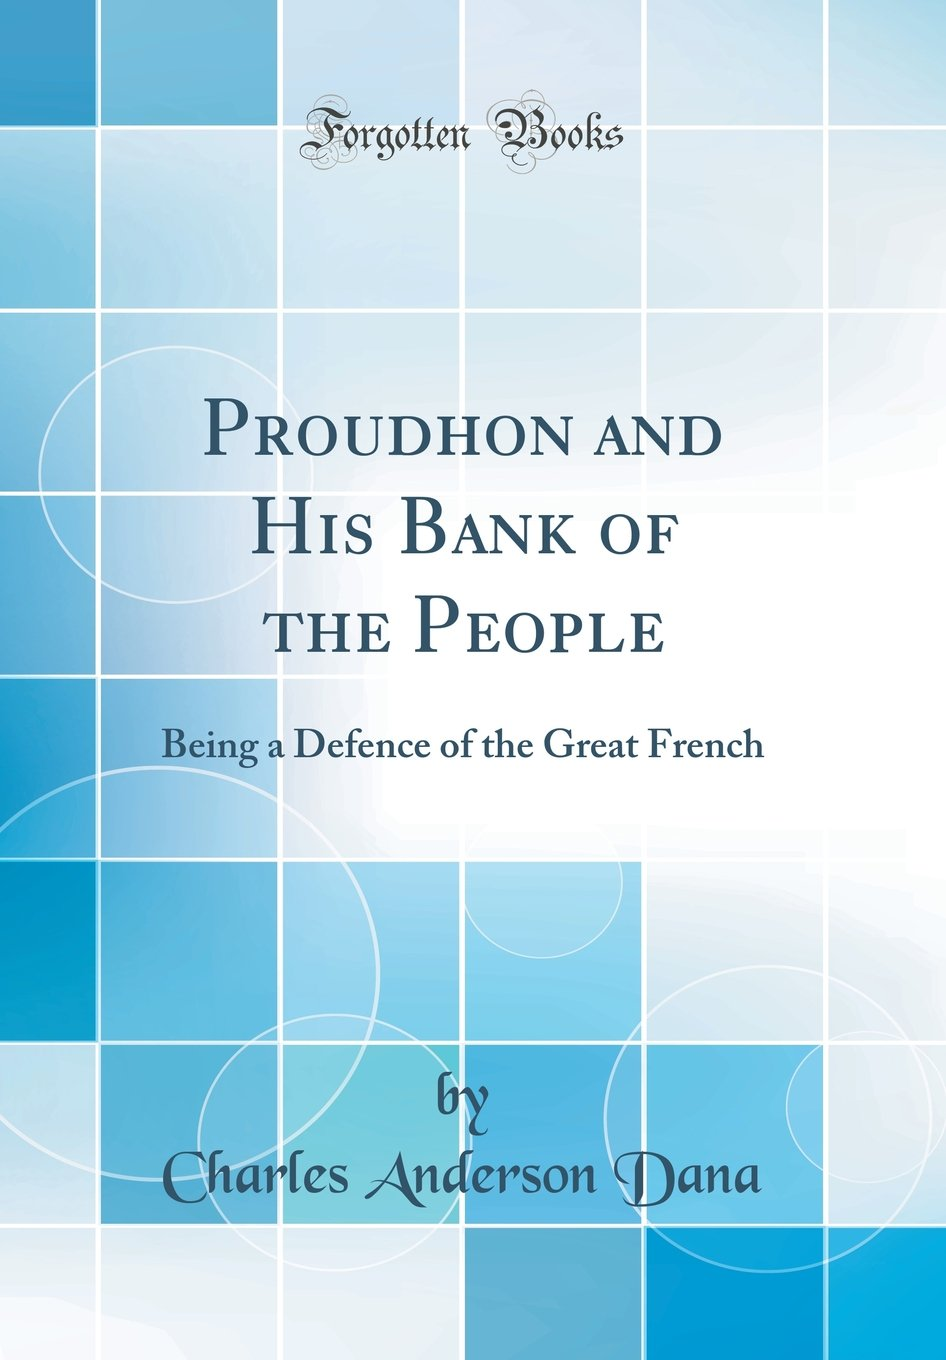 Download Proudhon and His Bank of the People: Being a Defence of the Great French (Classic Reprint) ebook